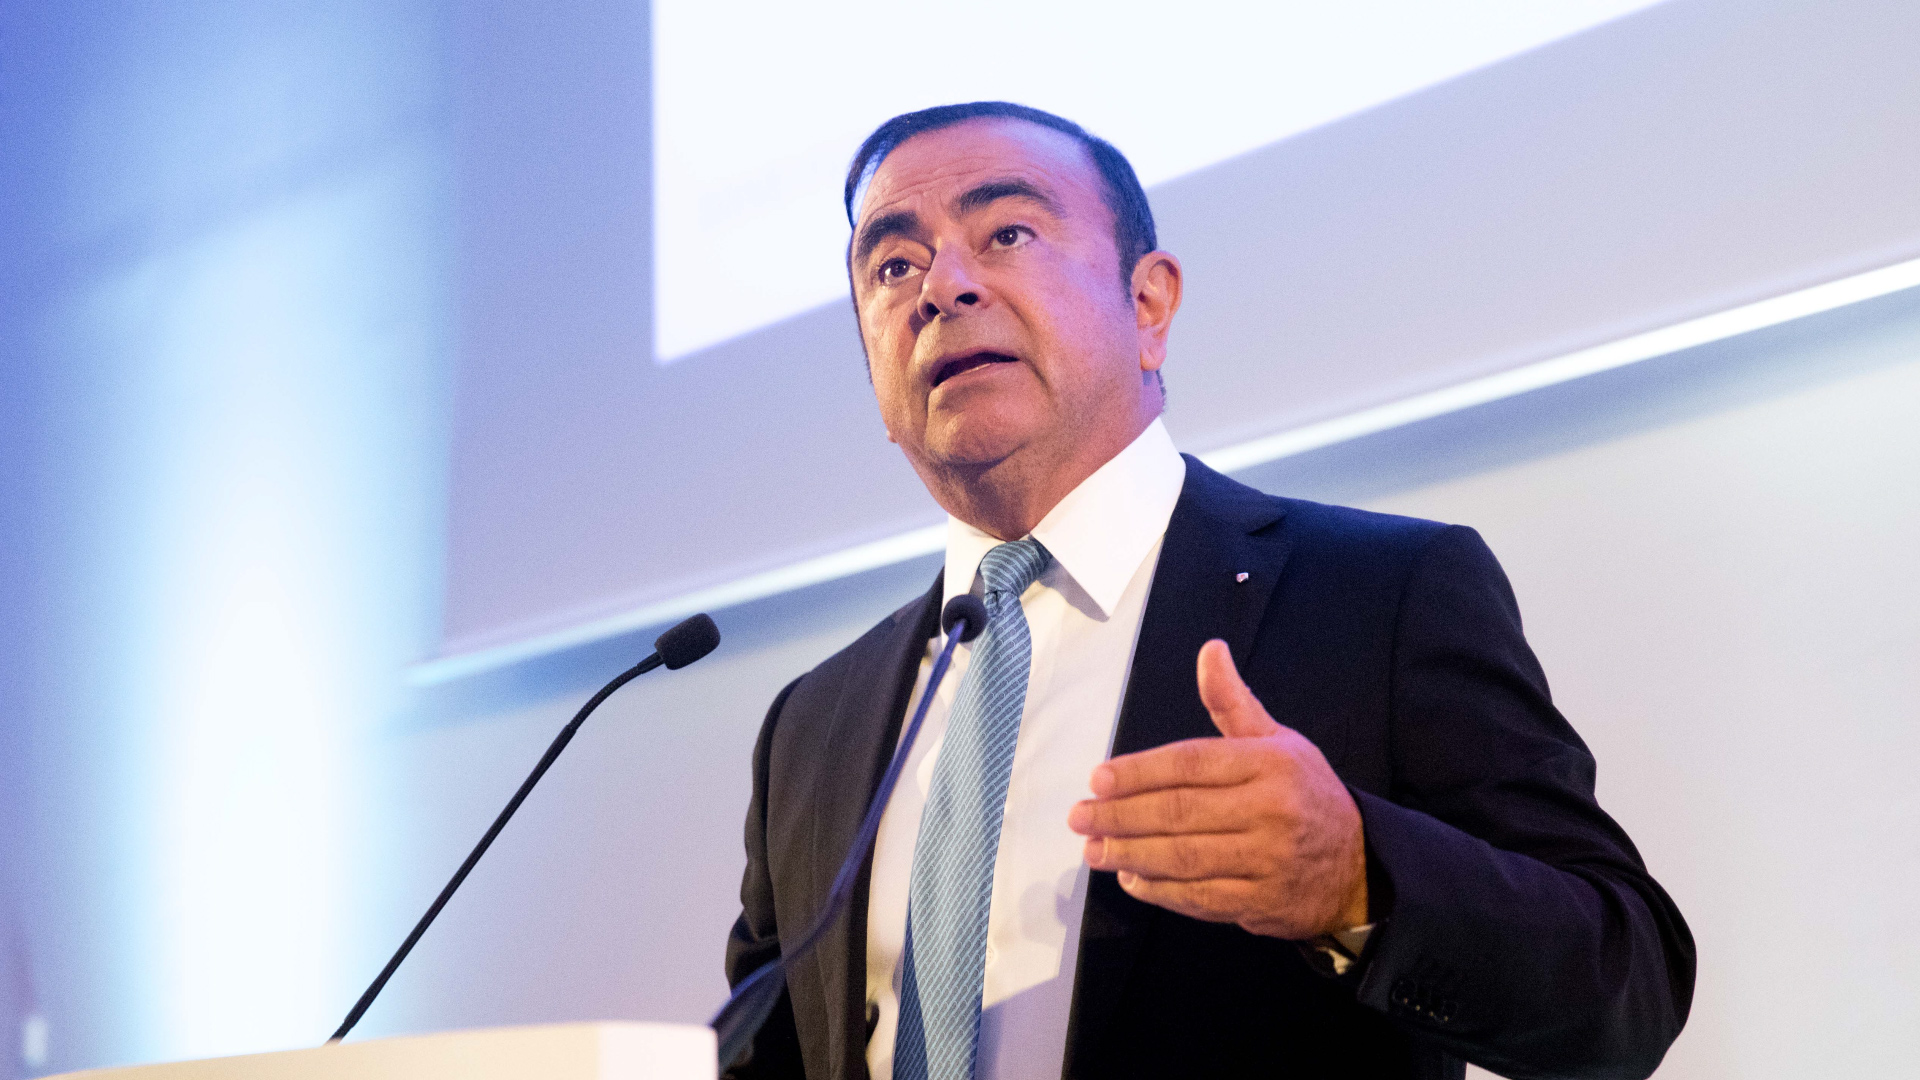 Carlos Ghosn, Chairman & CEO of the Renault–Nissan–Mitsubishi Alliance